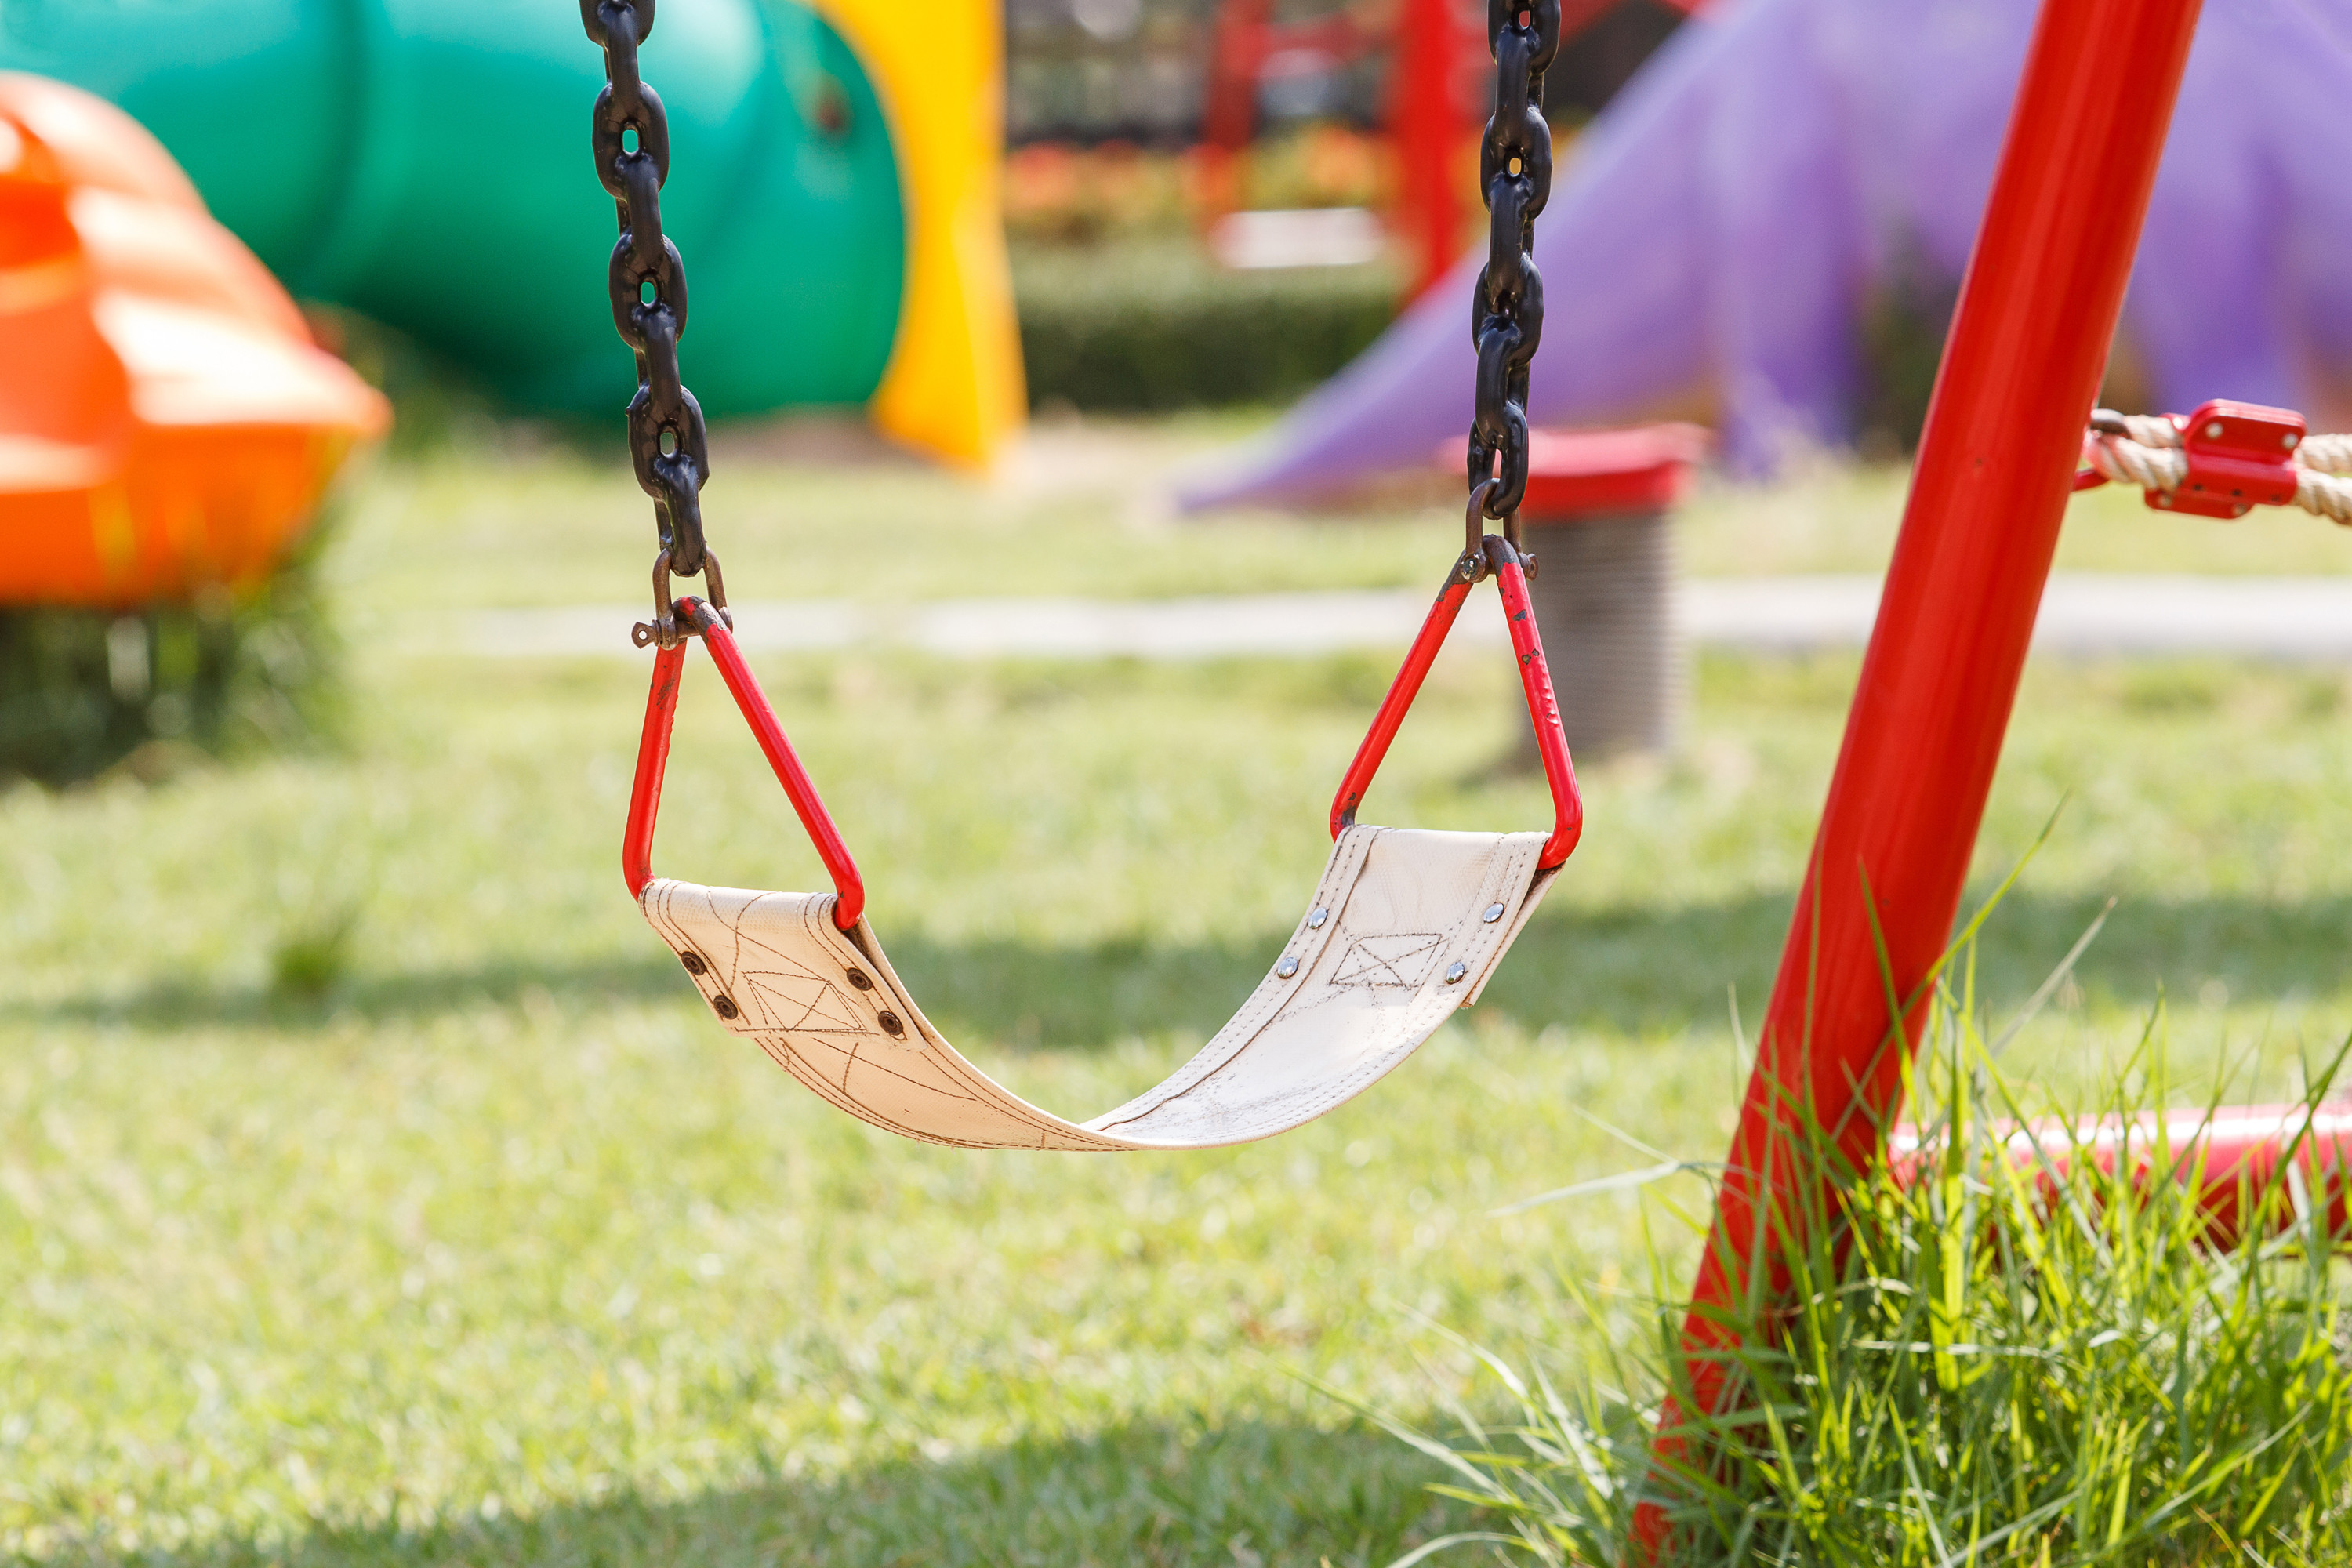 This playground in Muscat to have new equipment